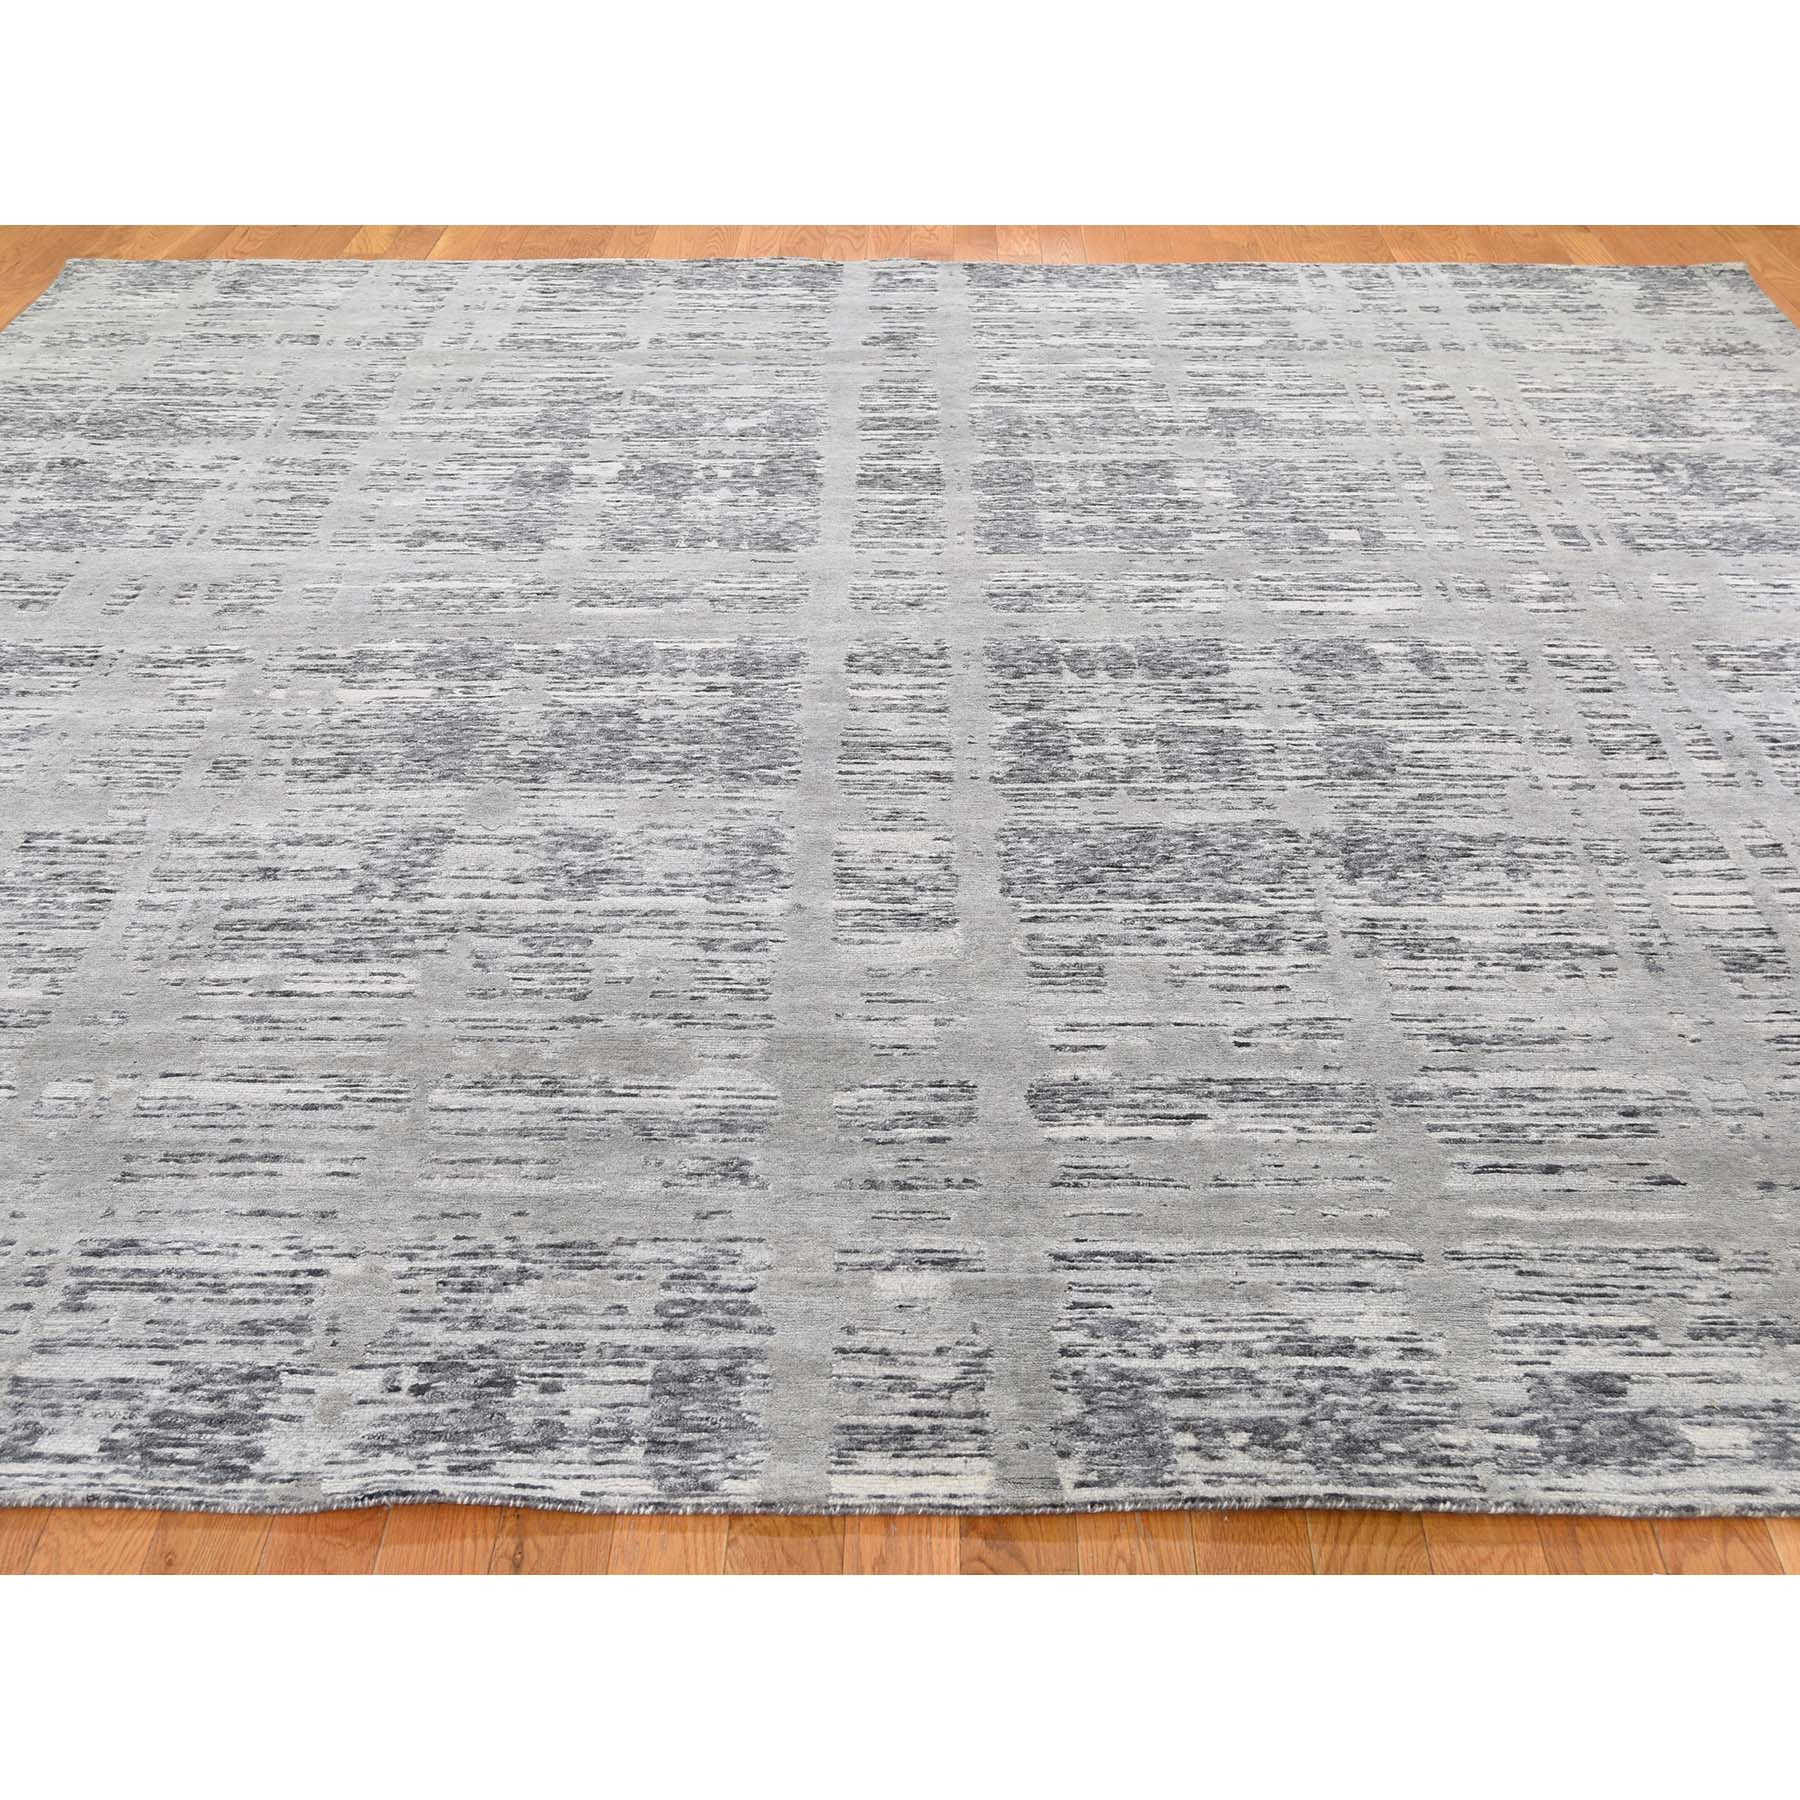 10-1 x10-1  Square Gray Hand Spun Undyed Natural Wool Modern Oriental Hand-Knotted Rug